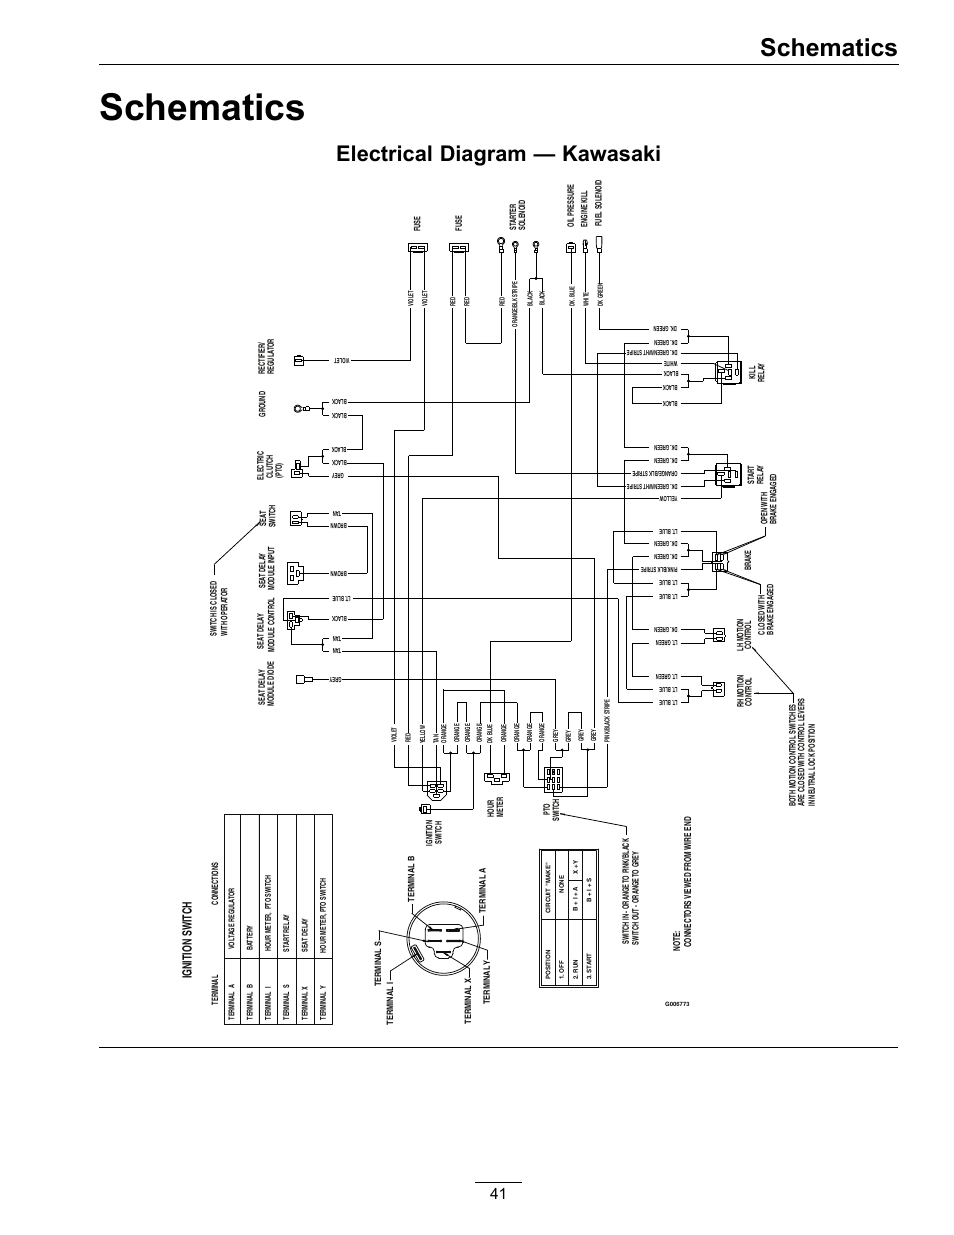 kawasaki voltage regulator wiring diagram kawasaki voltage regulator wiring diagram general wiring diagram  voltage regulator wiring diagram